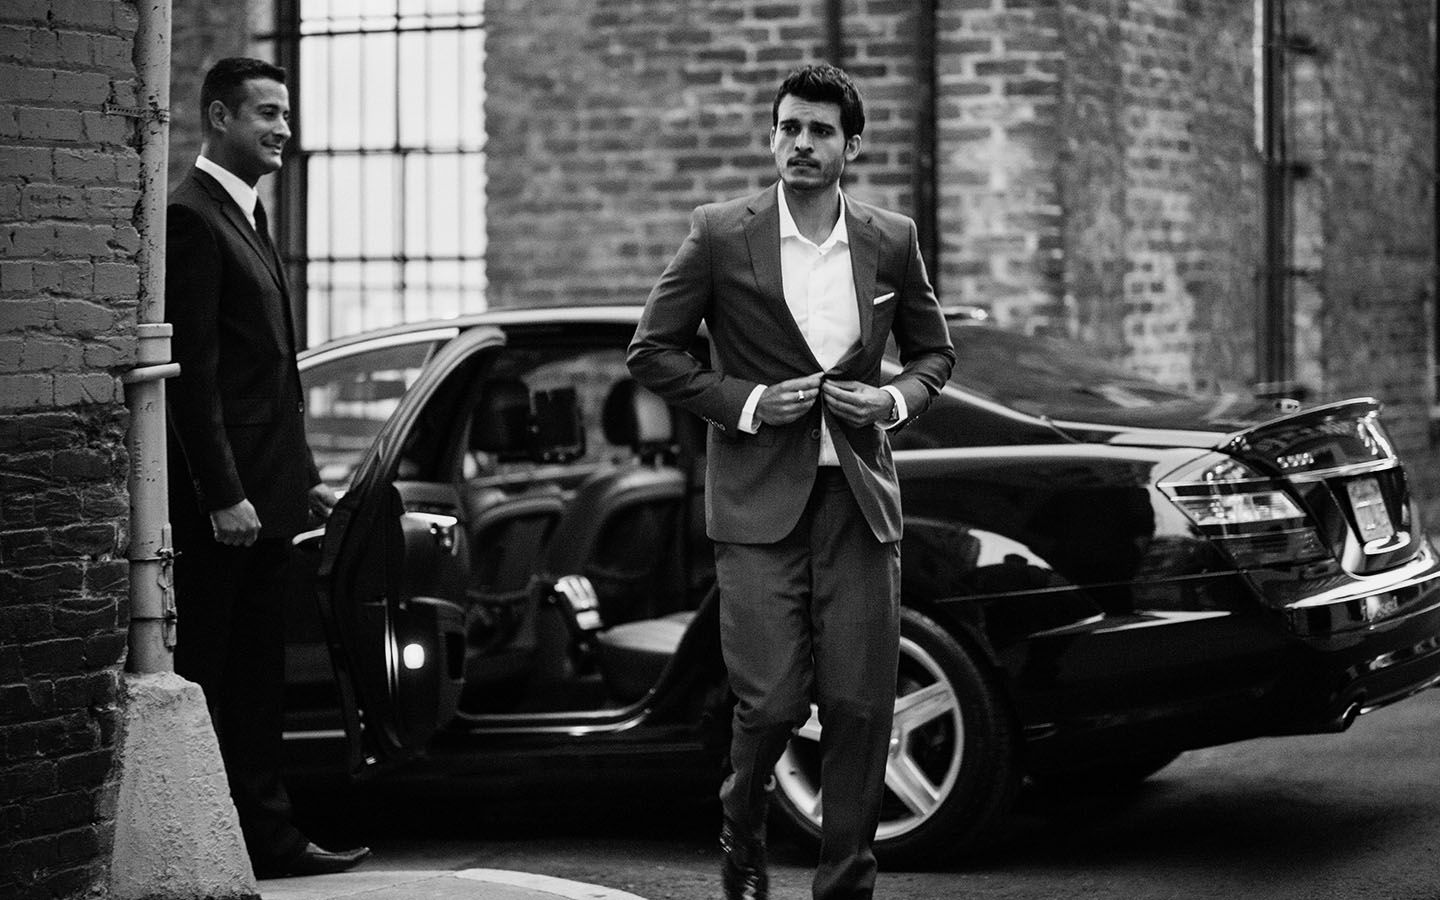 Do You Want To Impress Your Clients Or Ride In Style We Offer First Class Corporate Transport Service In New York Just On One Uber Taxi Uber Travel Uber Ride